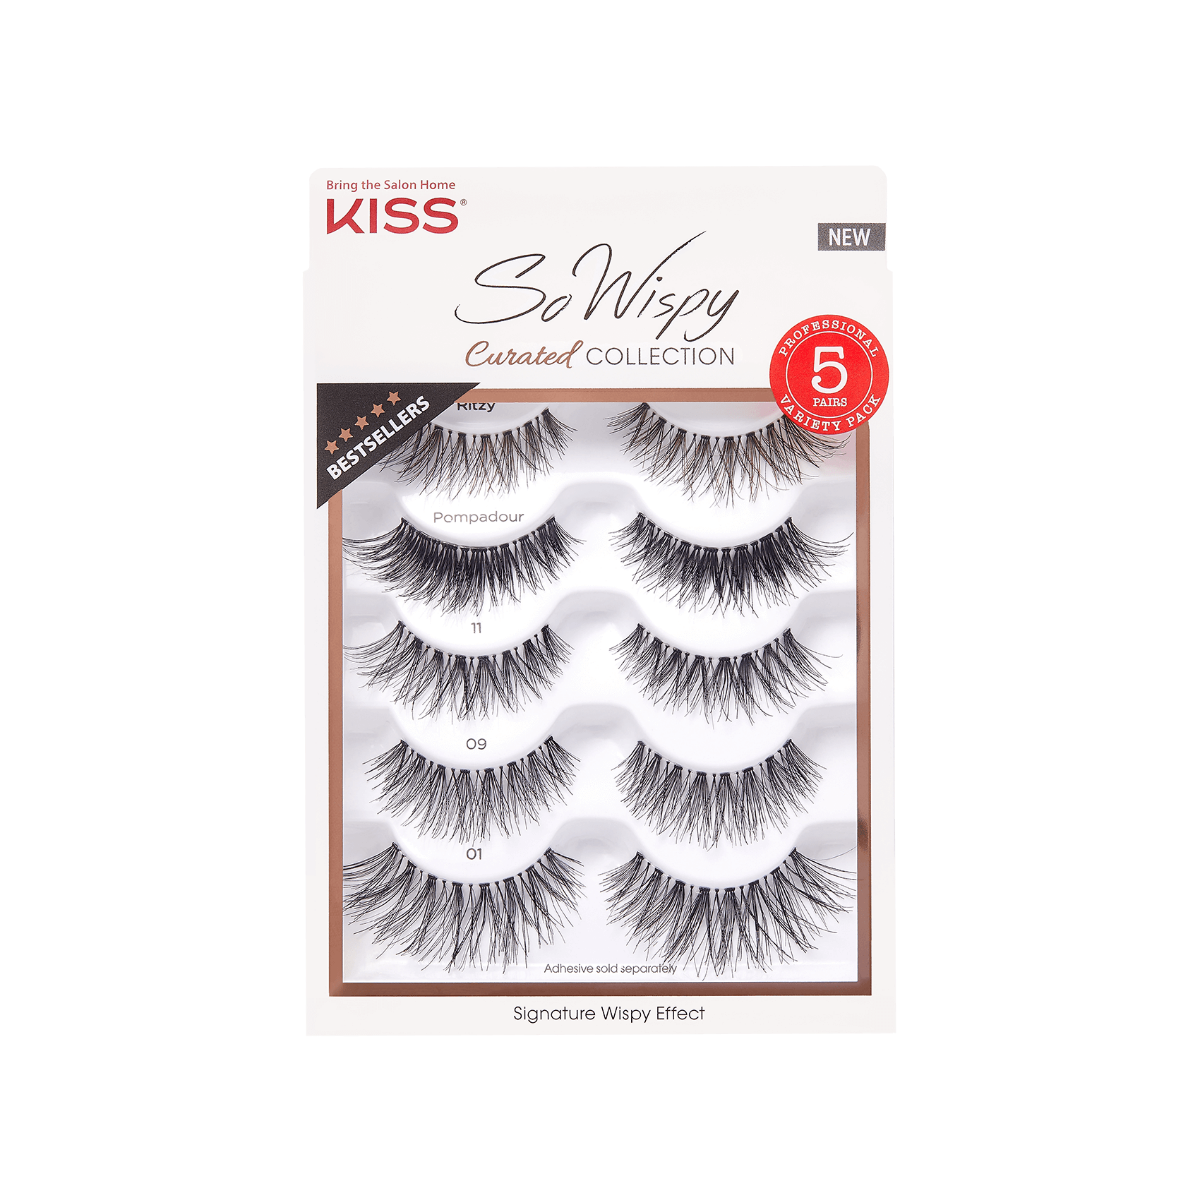 New! - KISS Curated Lash Collection